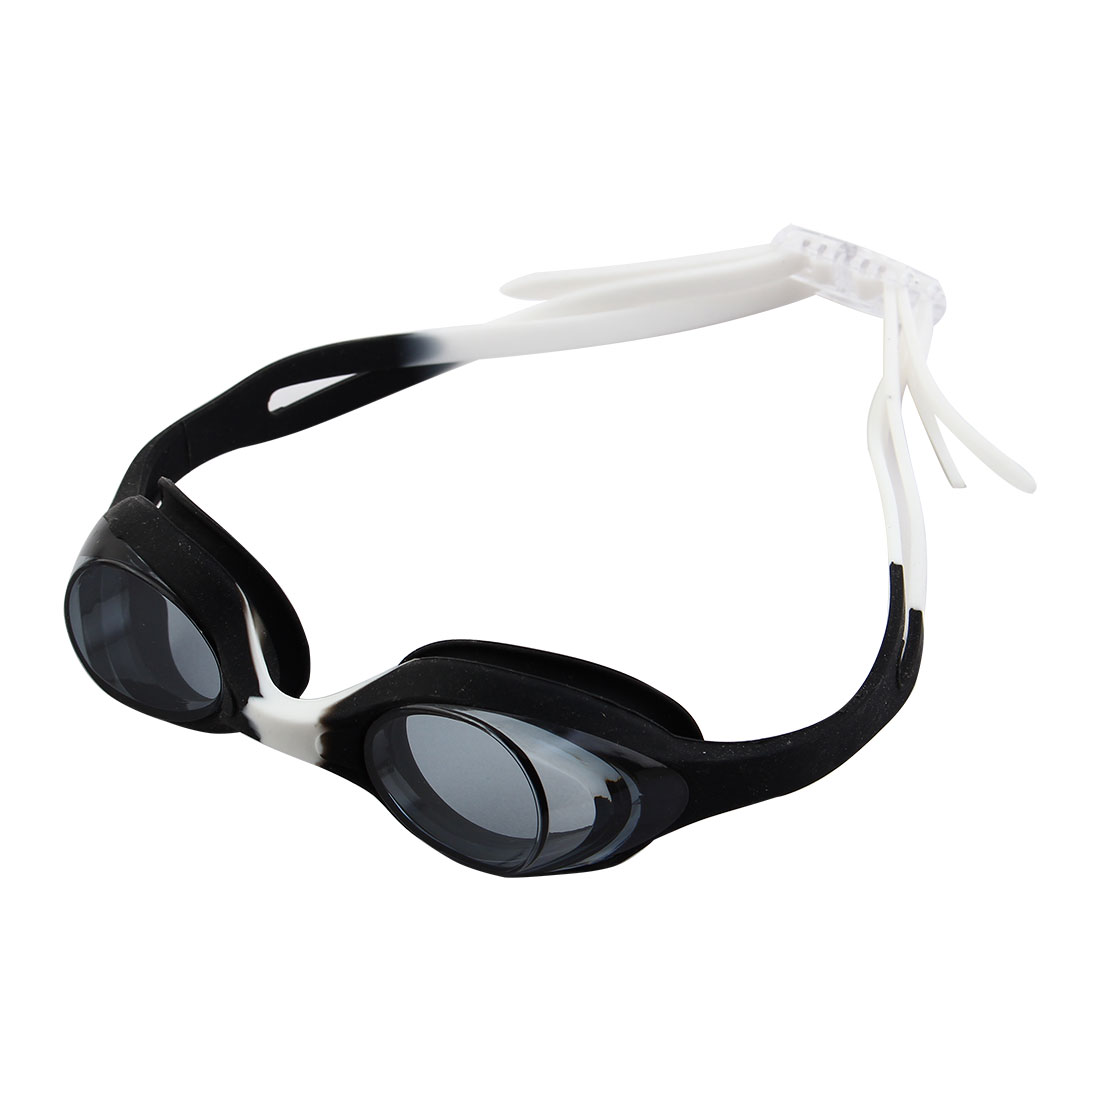 Clear Vision Anti Fog Adjustable Double Belt Swim Glasses Swimming Goggles Black White w Storage Case for Youth Kids Child